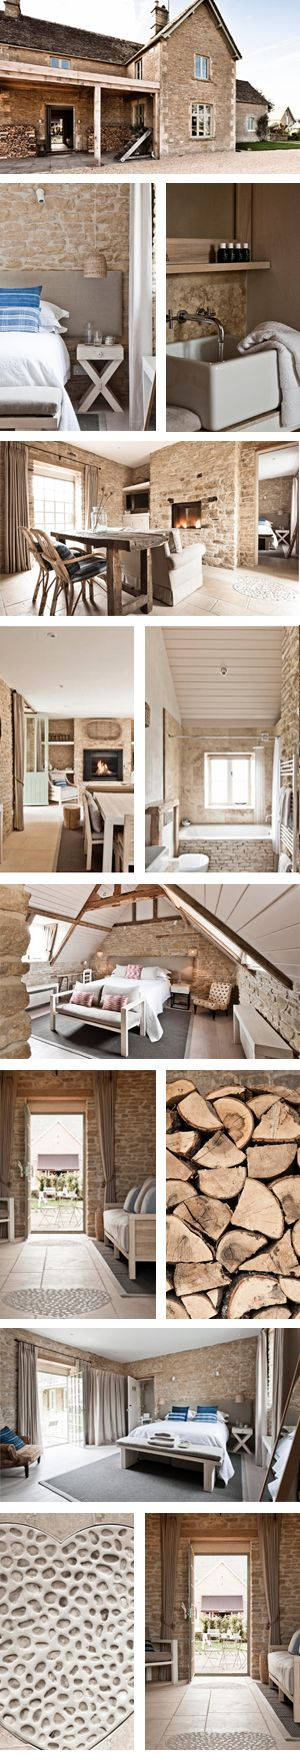 Stay in a cottage in the Cotswolds, England on a working organic farm. Looks wonderful.   Daylesford Organic Farm